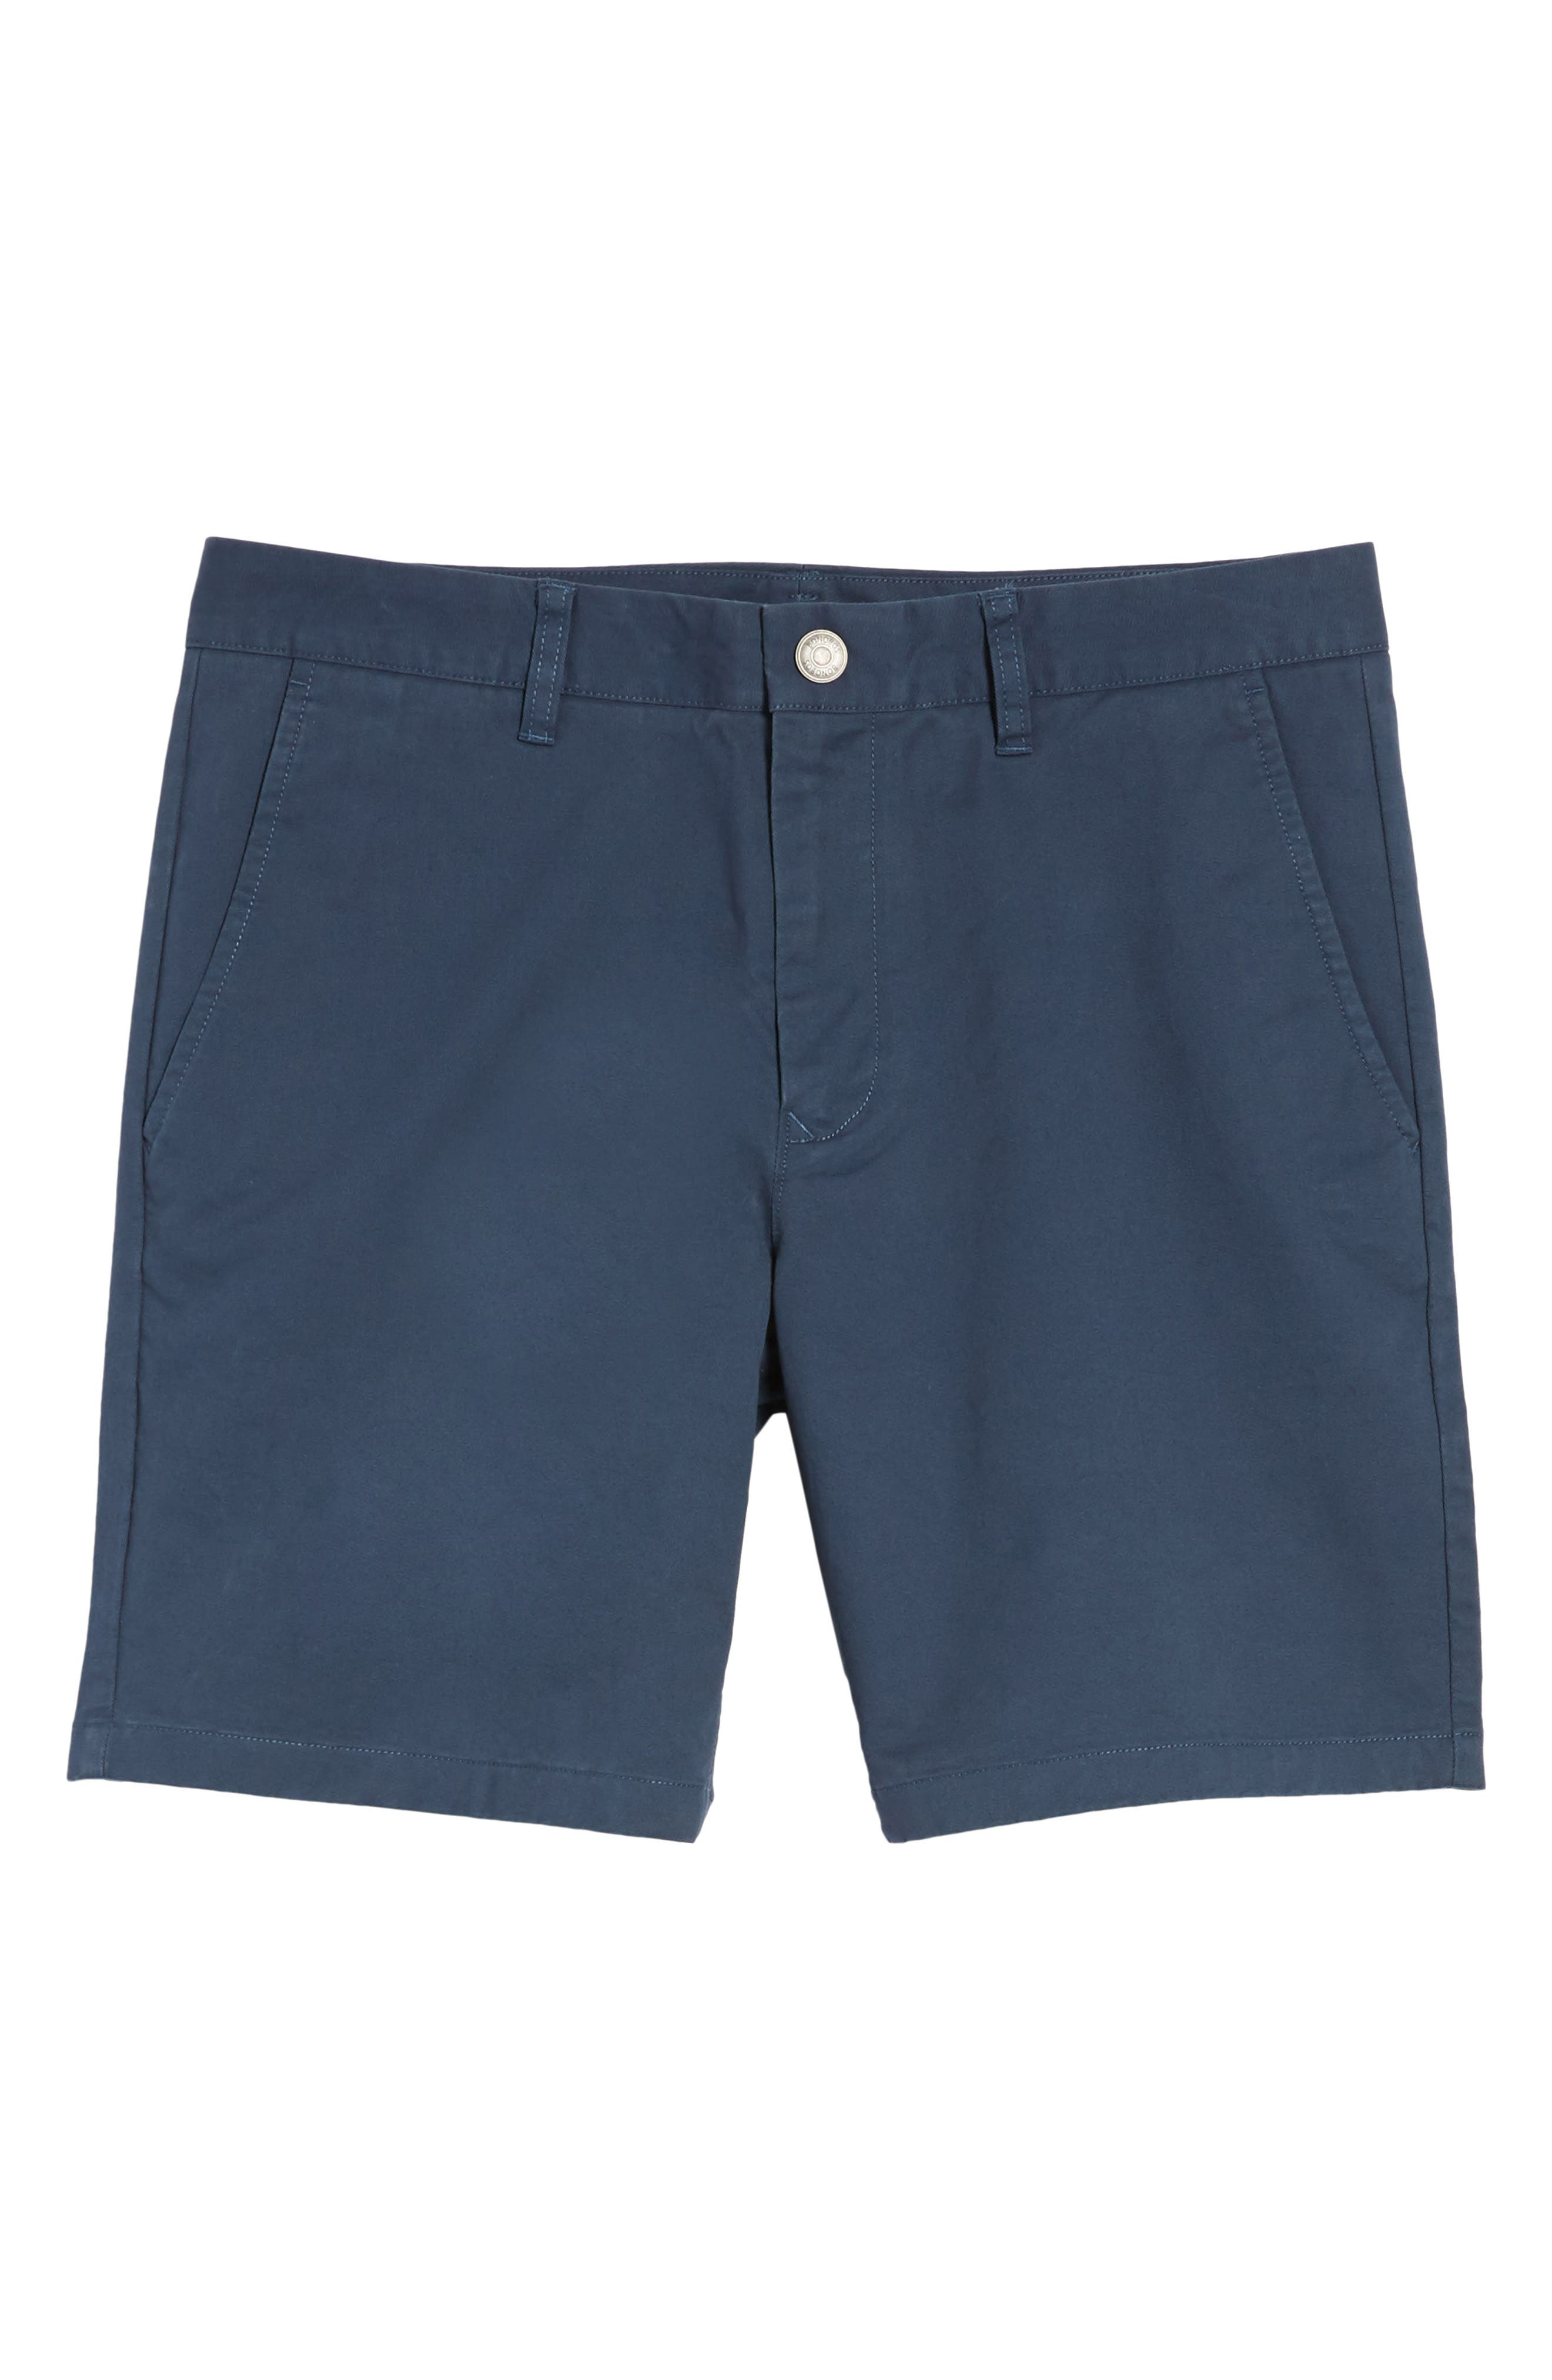 Stretch Washed Chino 7-Inch Shorts,                             Alternate thumbnail 6, color,                             STEELY